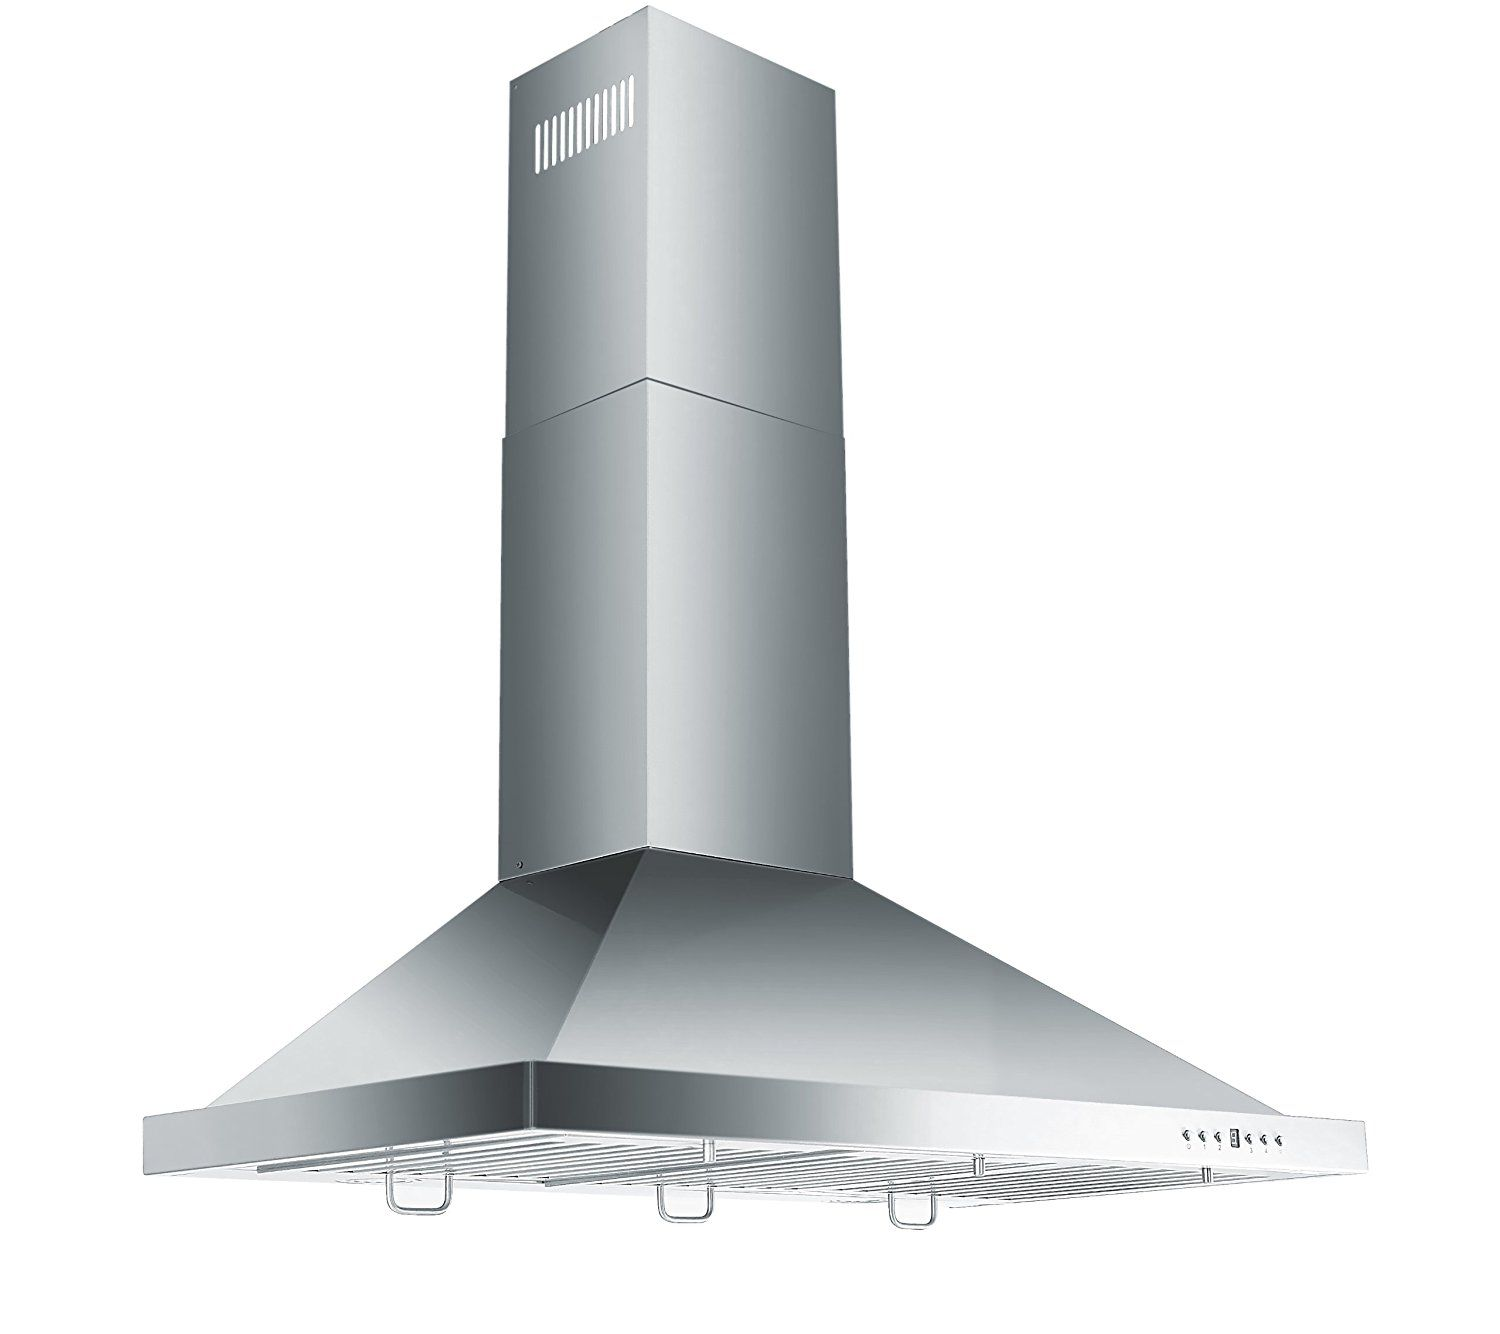 Z Line Kb 36 Stainless Steel Wall Mount Range Hood 36 Inch This Is An Amazon Affiliate Link Cl Wall Mount Range Hood Steel Wall Stainless Steel Hood Vent